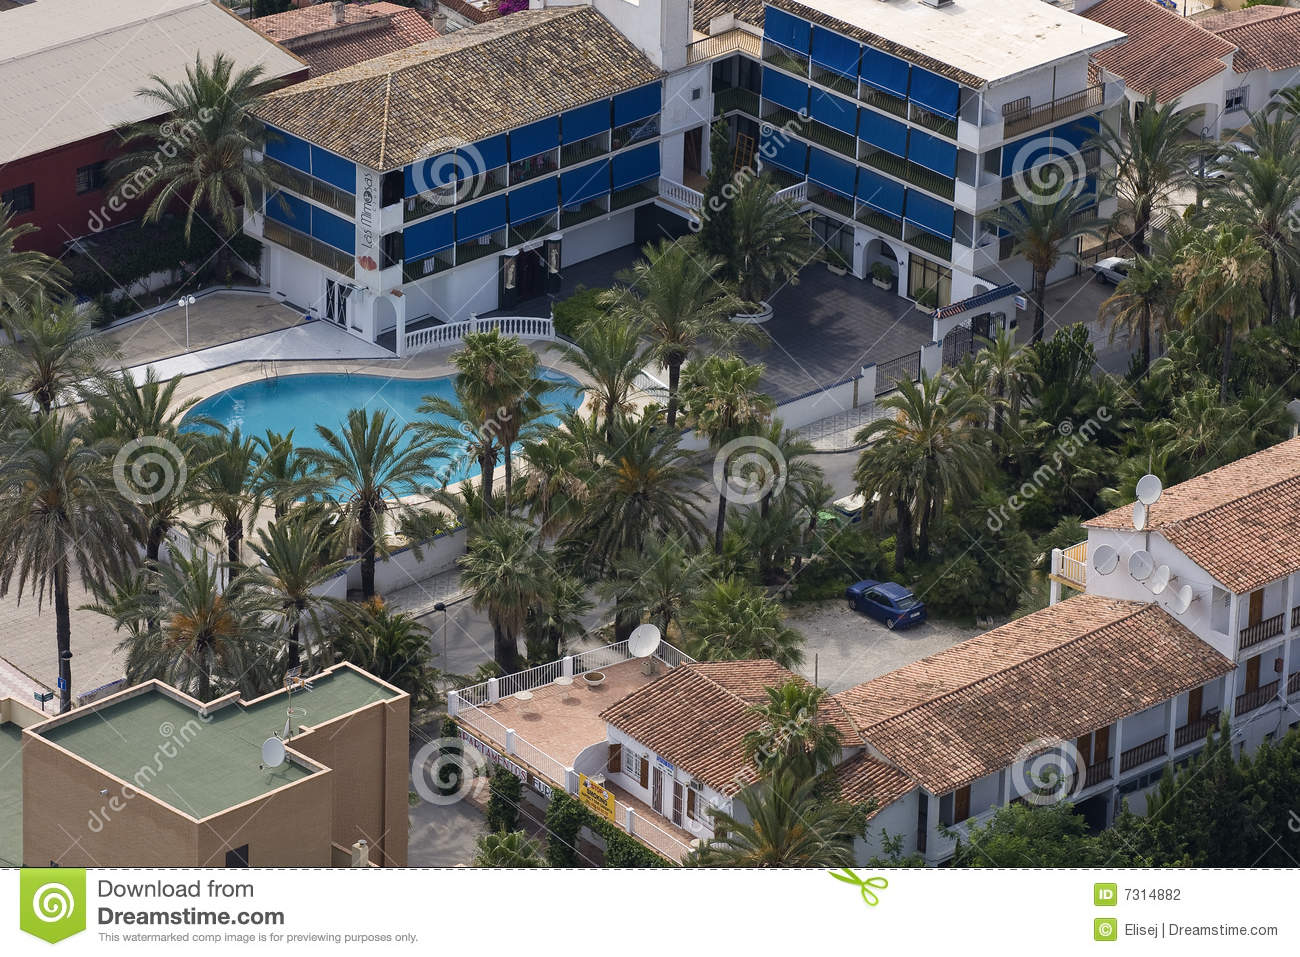 Benidorm. Territorio vicino all hotel